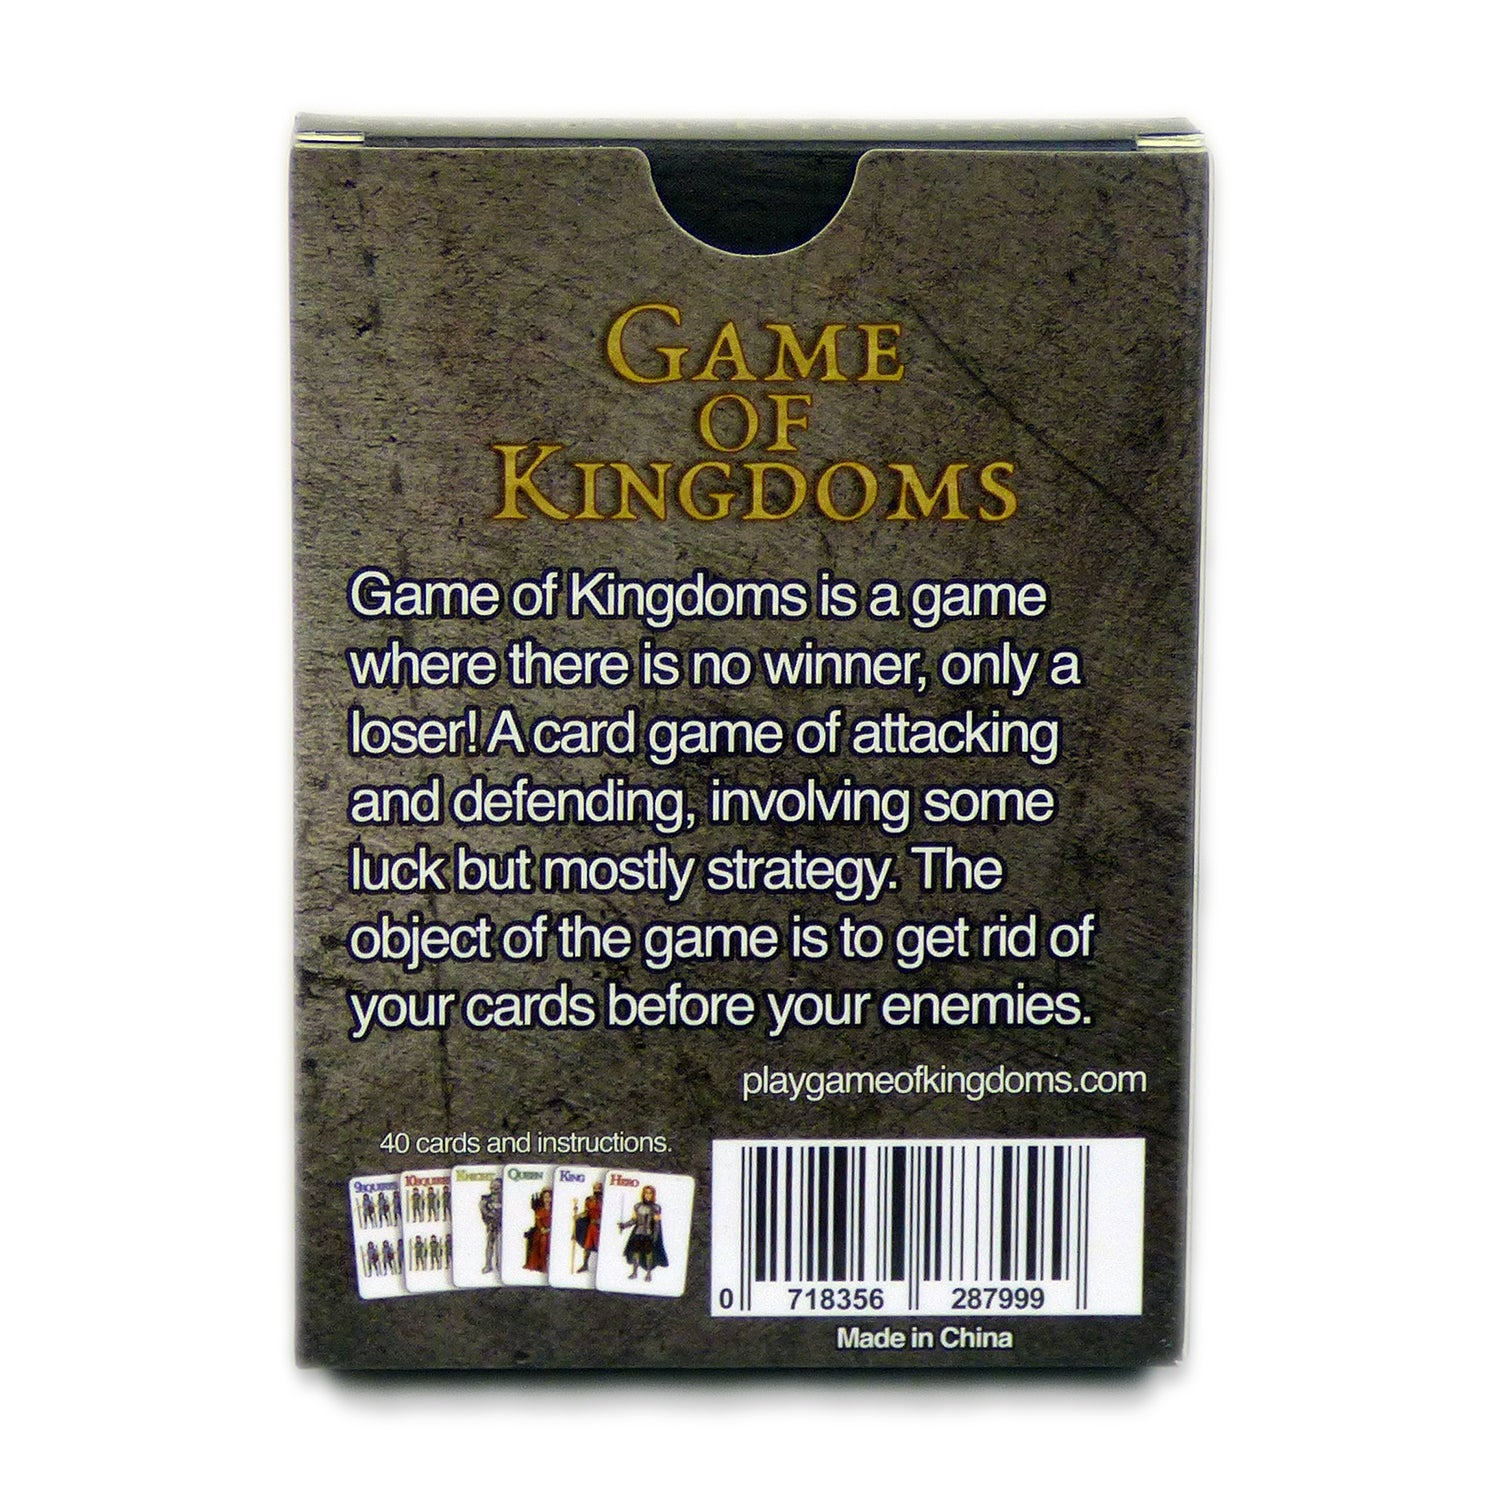 Game of Kingdoms